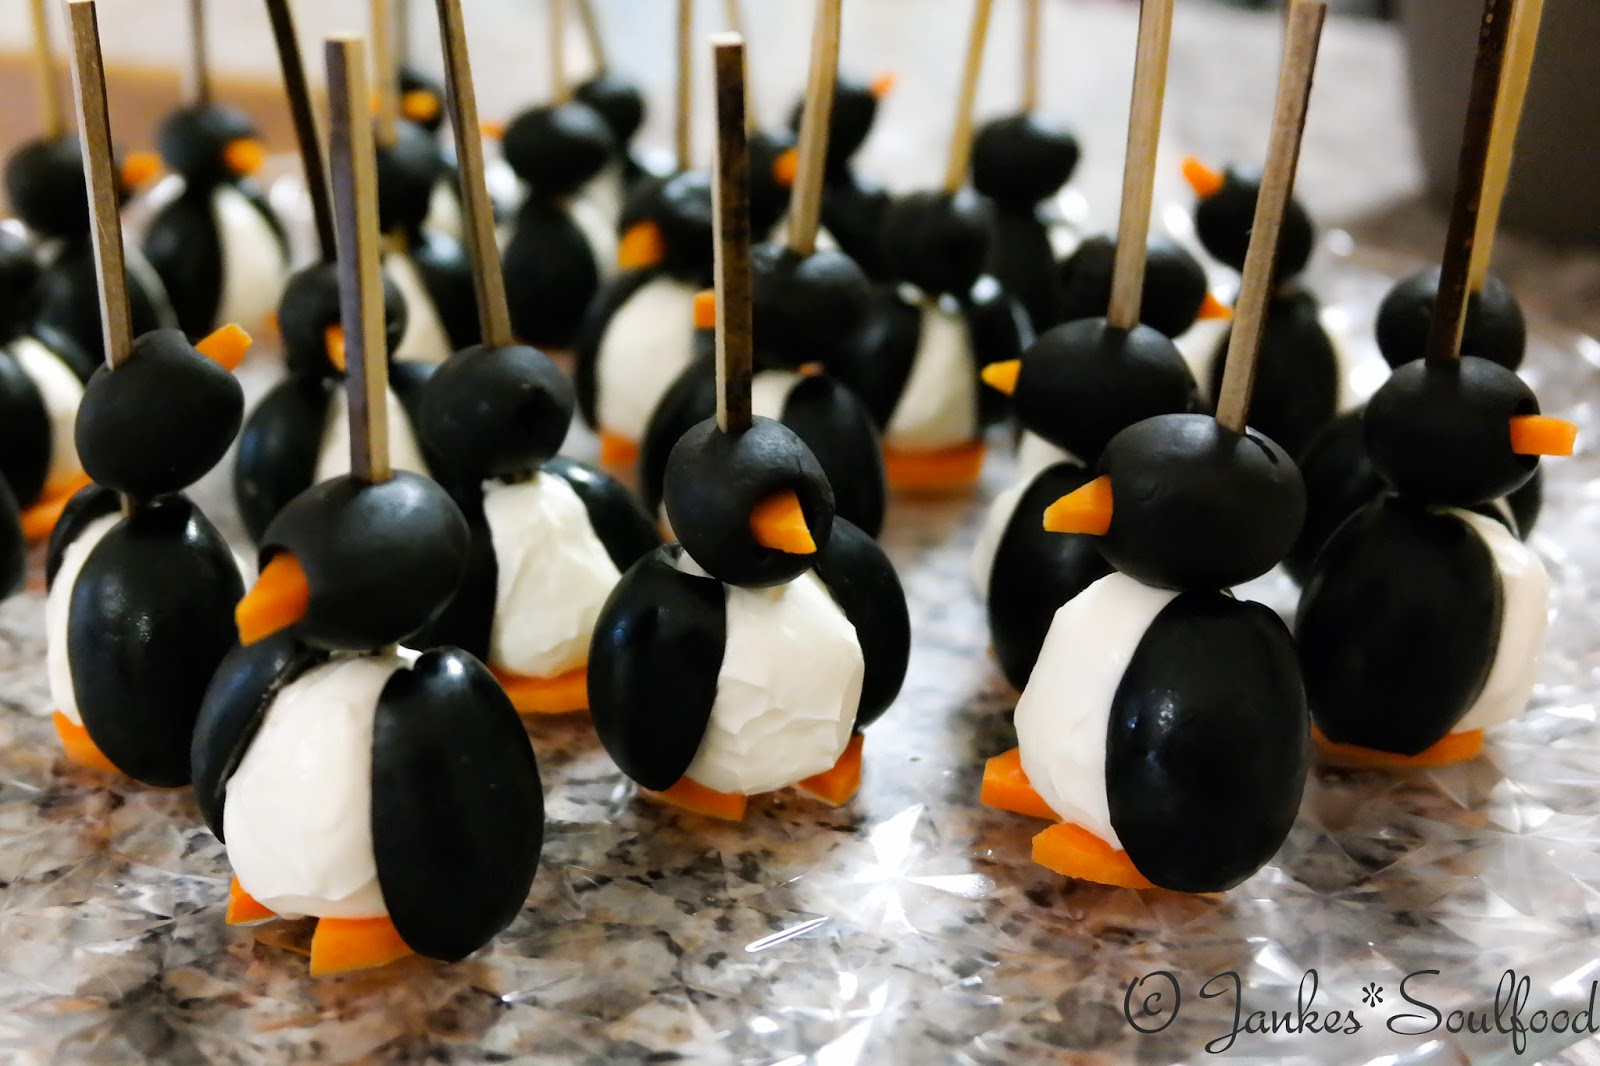 jankes soulfood kleine fingerfood pinguine. Black Bedroom Furniture Sets. Home Design Ideas